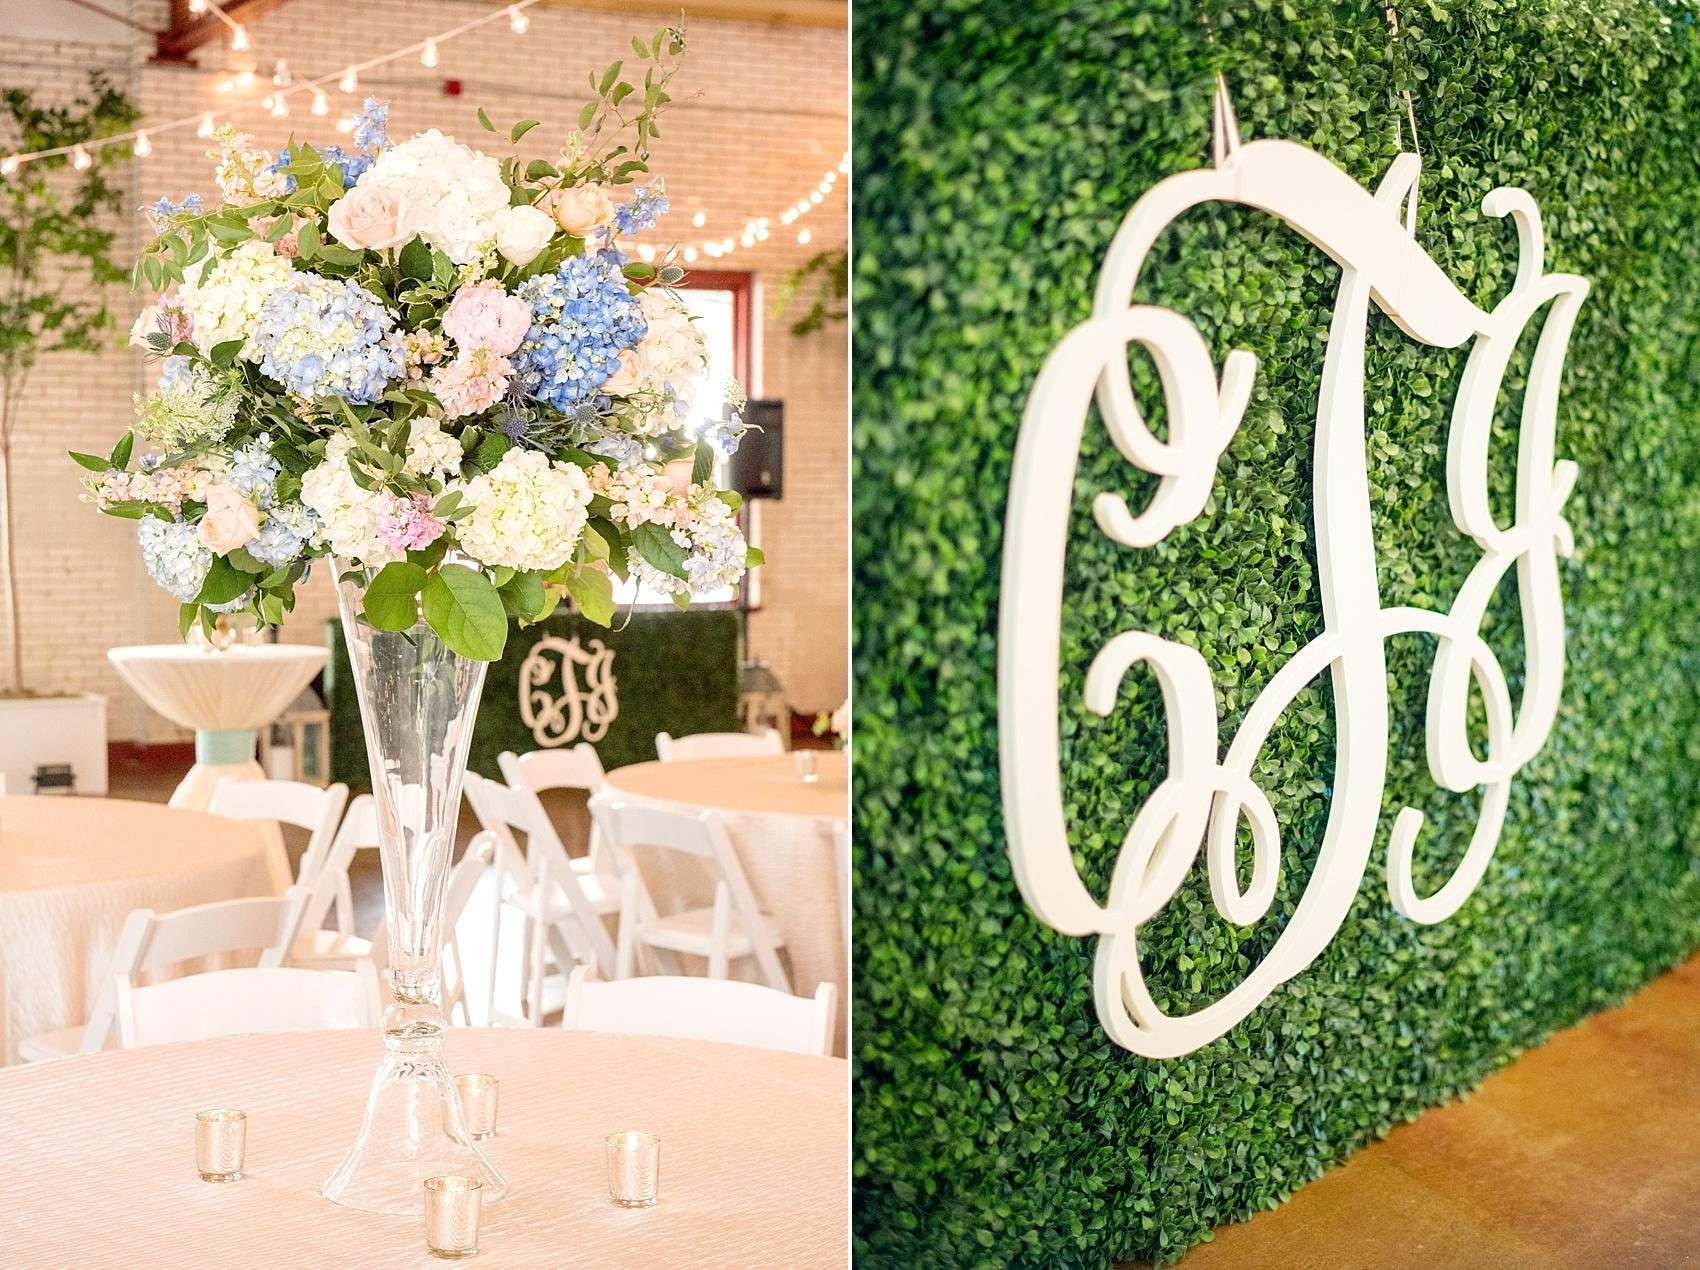 Mikkel Paige Photography photos of a downtown Raleigh Market Hall wedding with their custom laser cut monogram and floral centerpieces with hydrangea and roses.